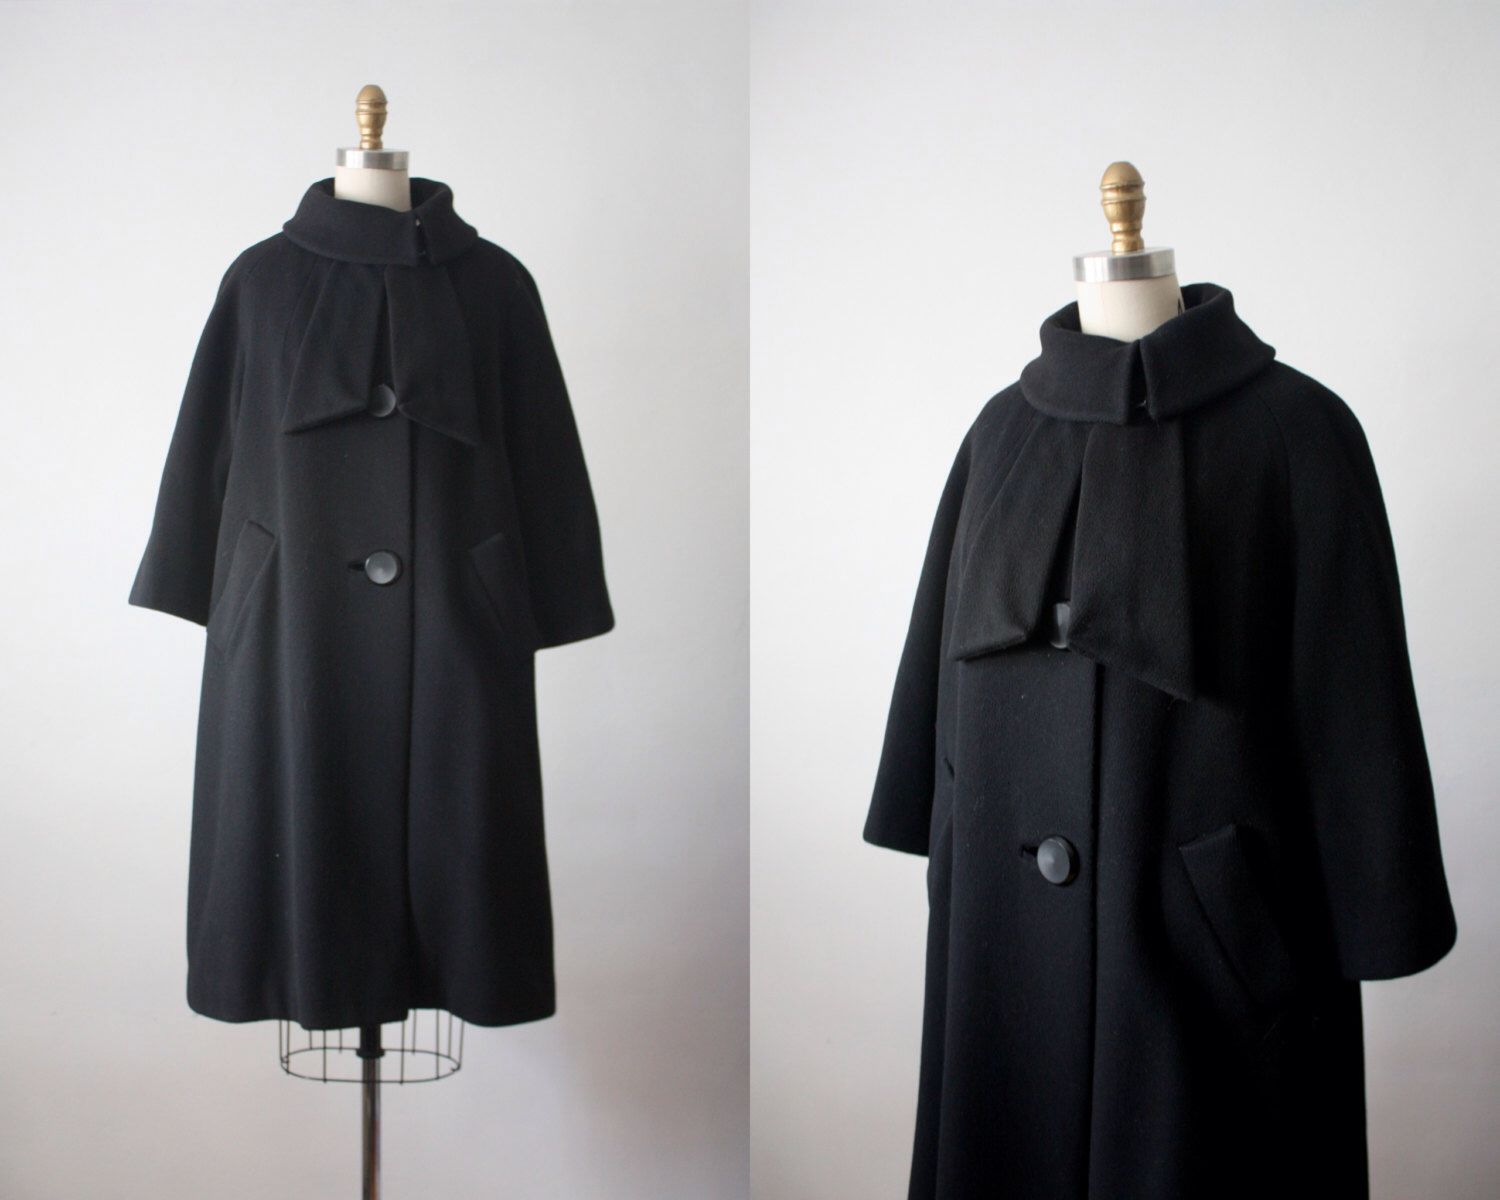 Swing coat / 1950s black wool coat | Black wool coat, Swing coats ...